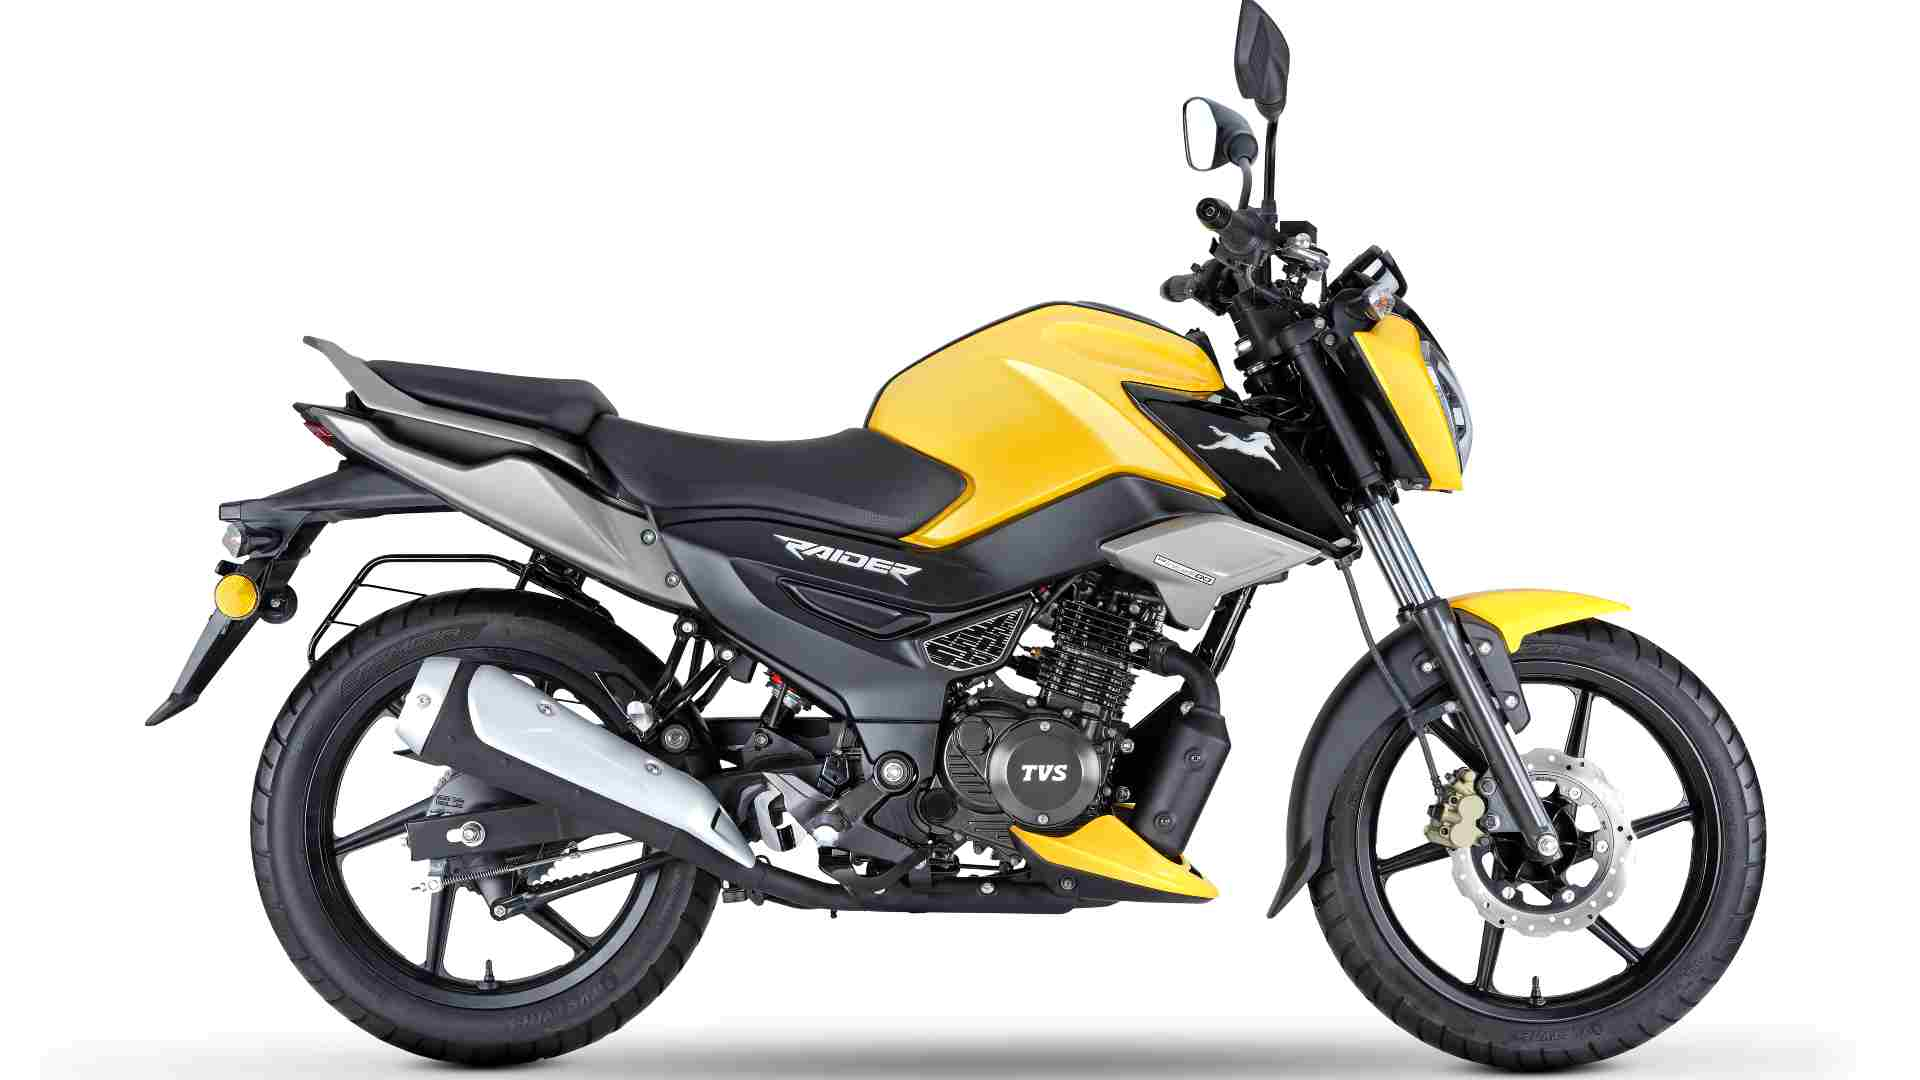 Even the disc variant of the Raider will only have a drum brake at the rear. Image: TVS